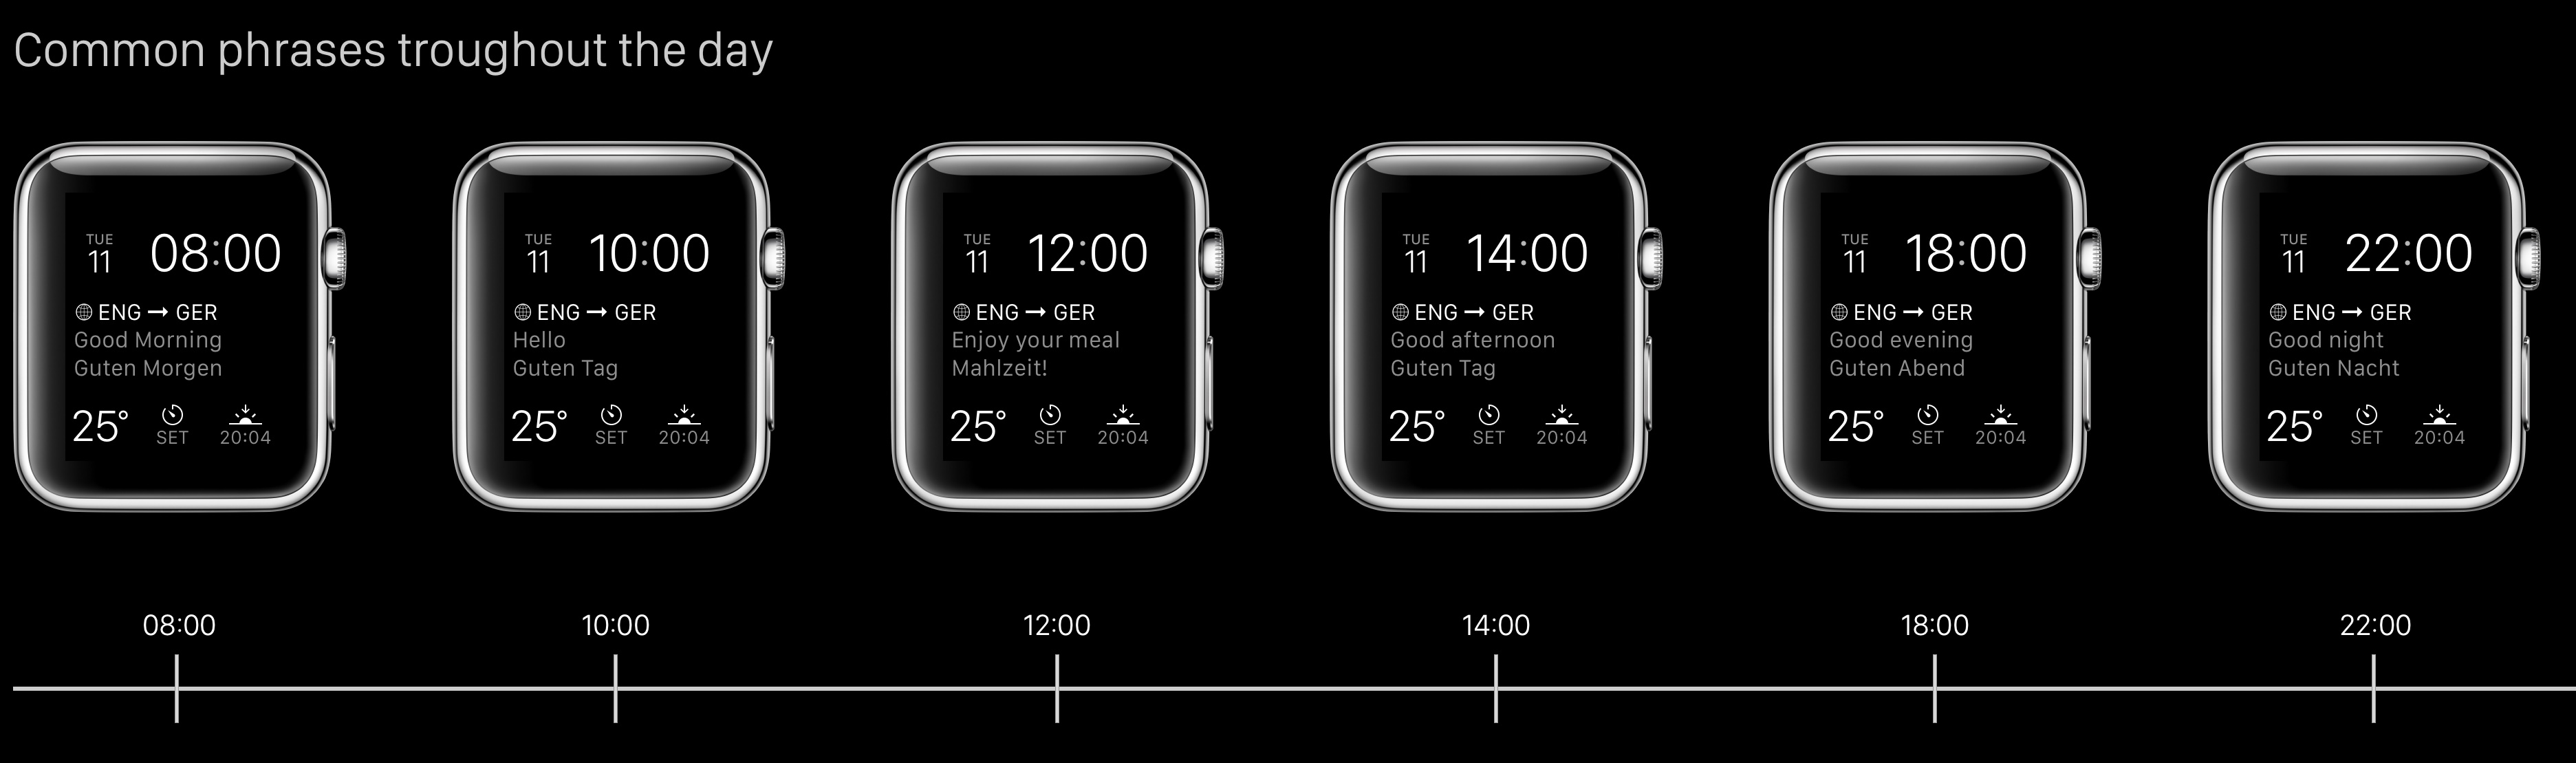 Captura de pantalla 004 de iTranslate 9.0 para iOS Apple Watch